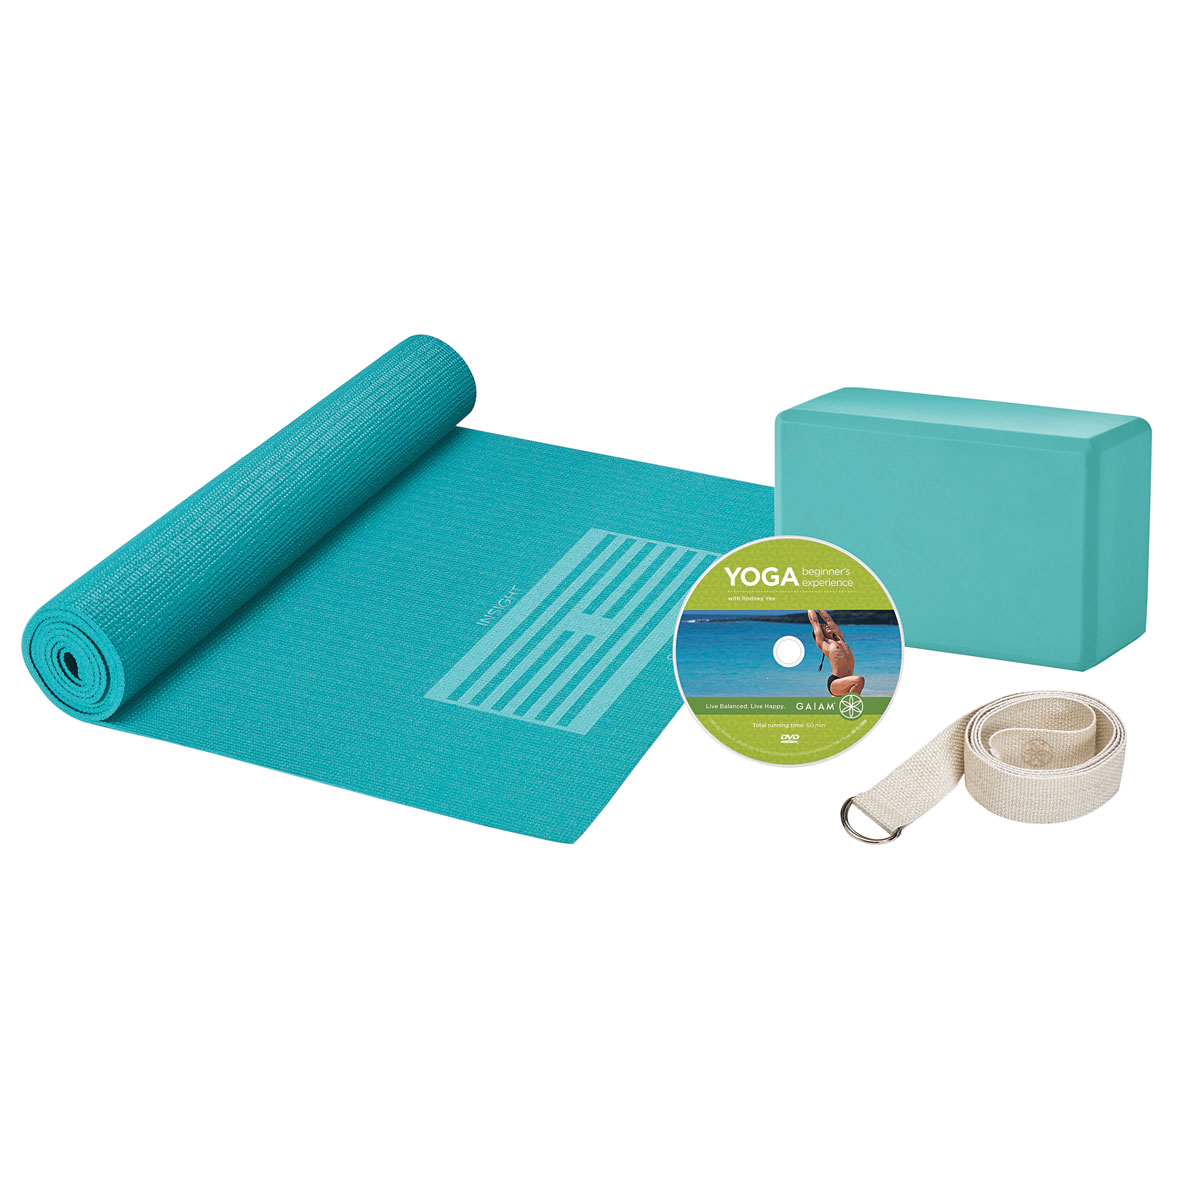 Deluxe Yoga Kit - W55990 - Gaiam - 05-53724 - Yoga